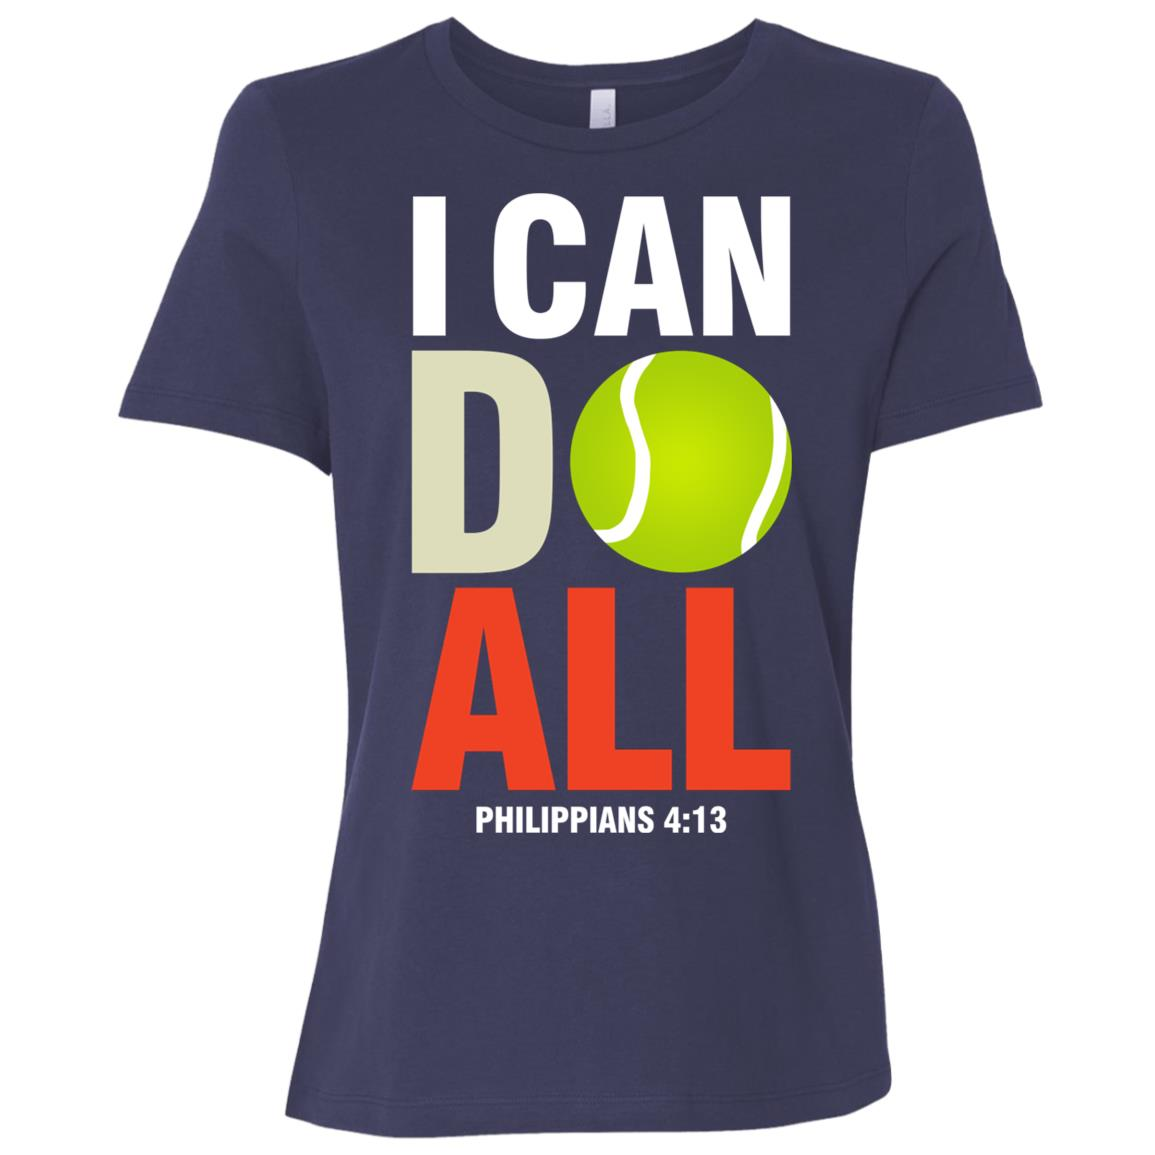 Tennis I Can Do All, Christian Women Short Sleeve T-Shirt